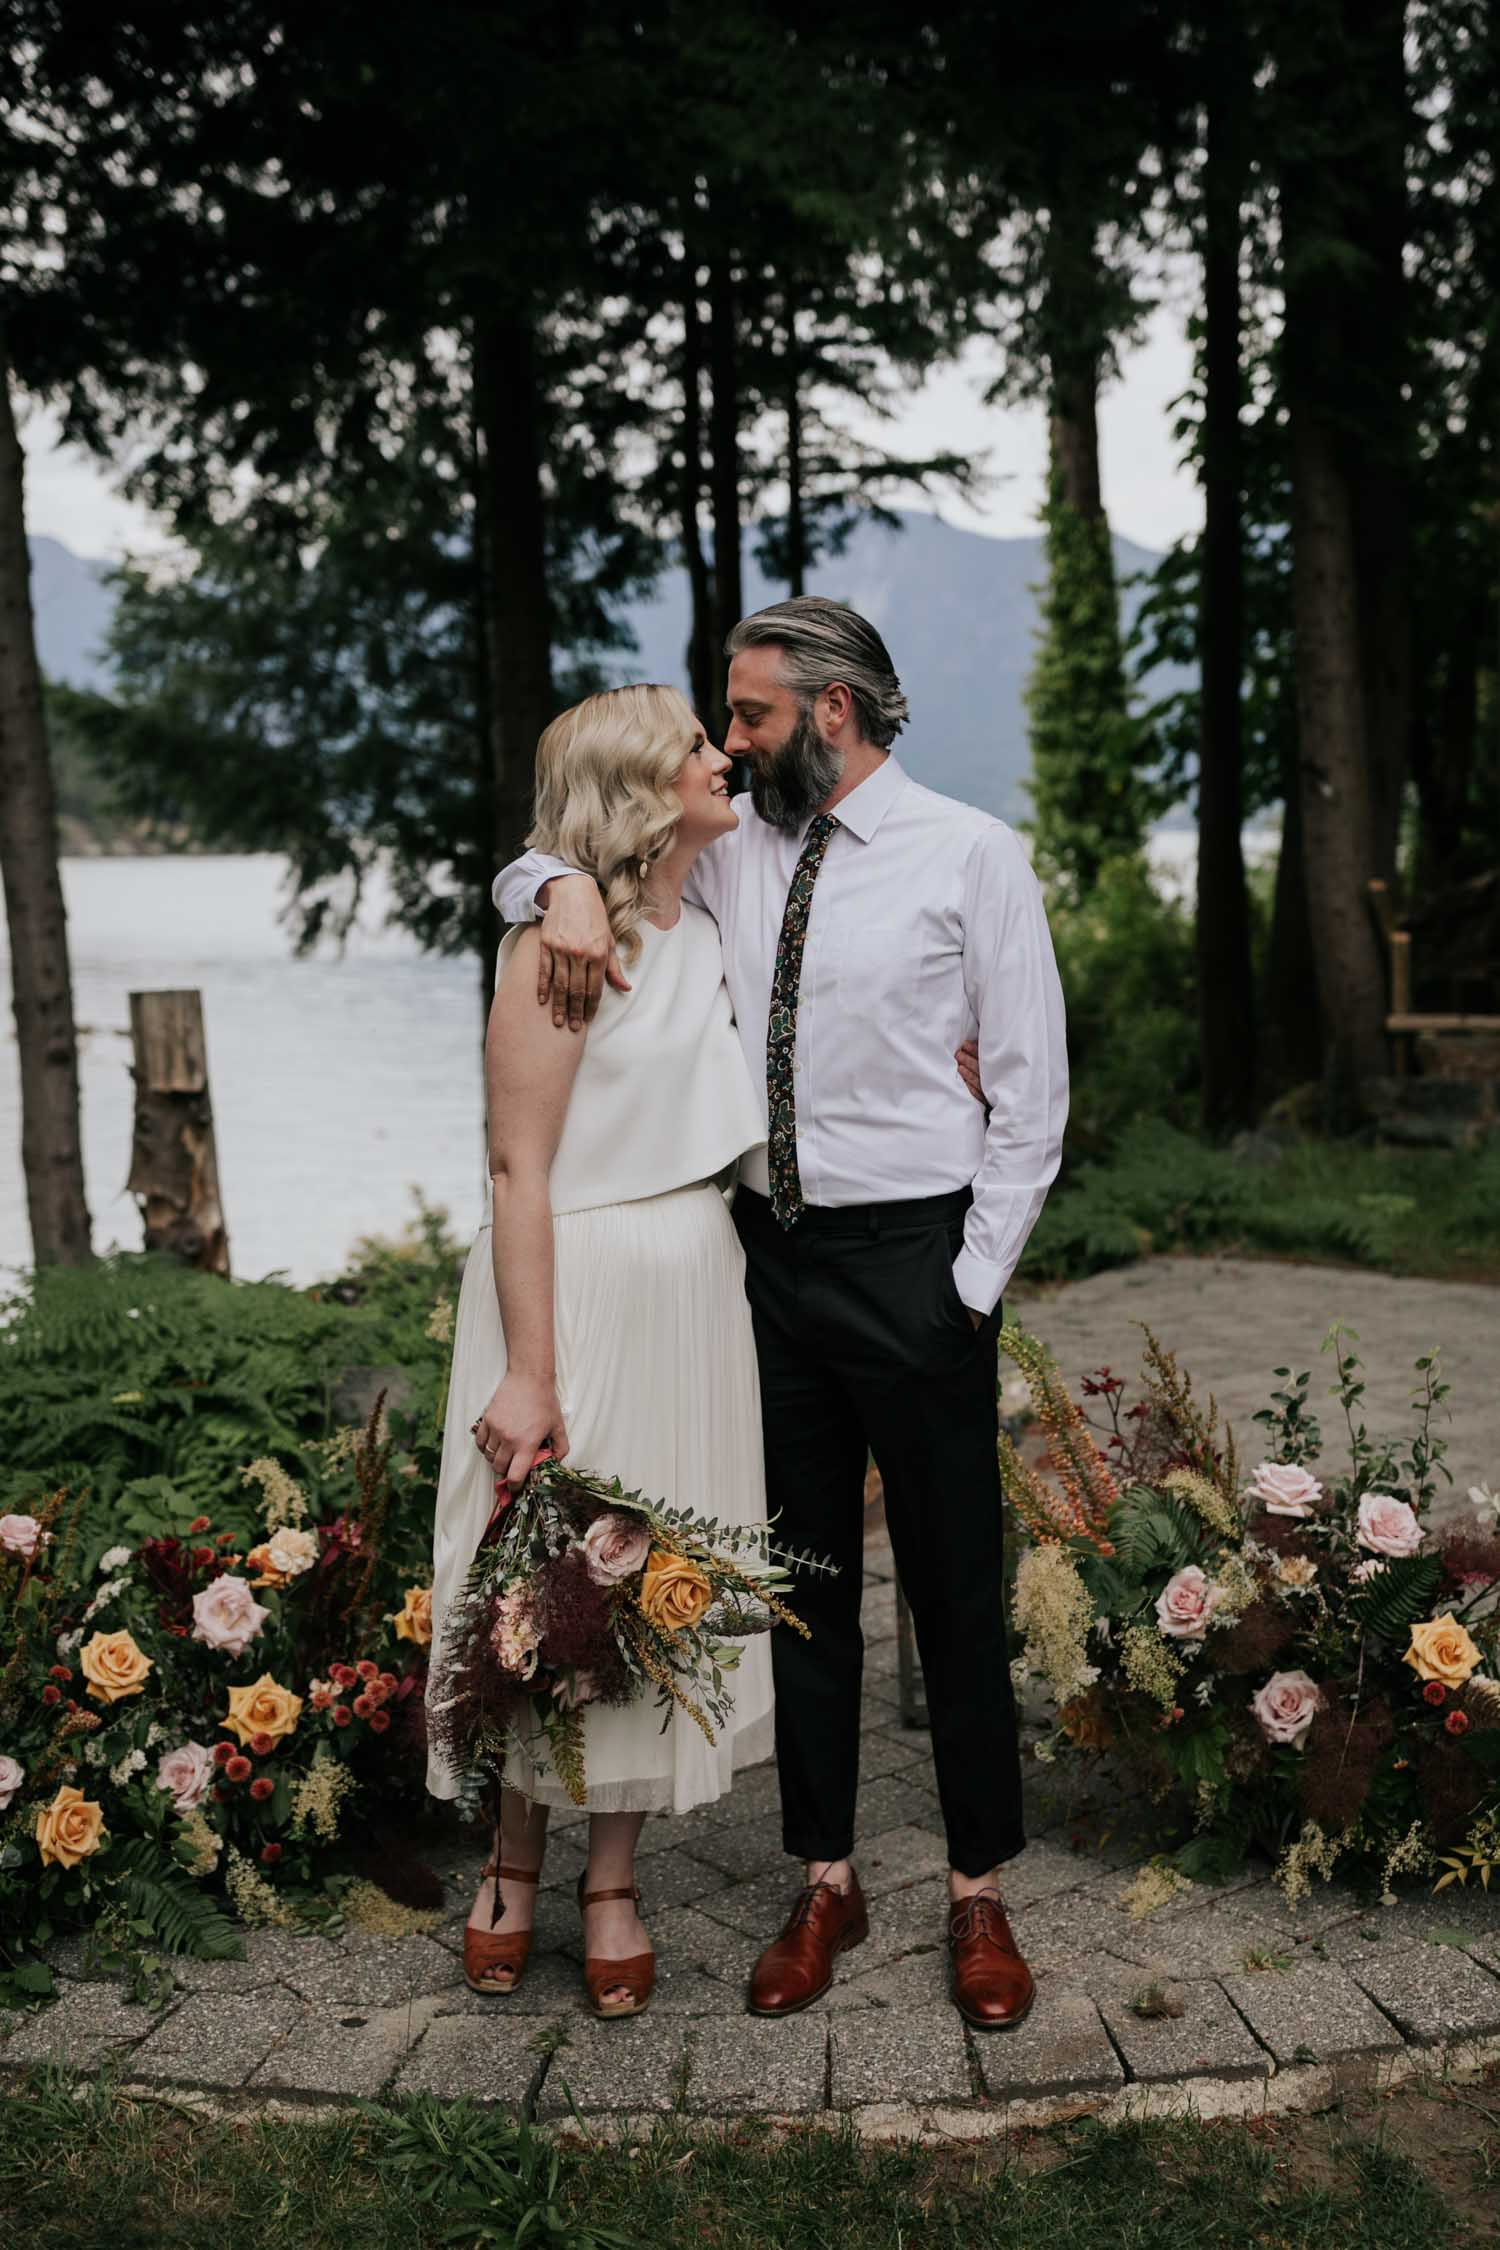 Bowen Island is one of the best places to elope in BC